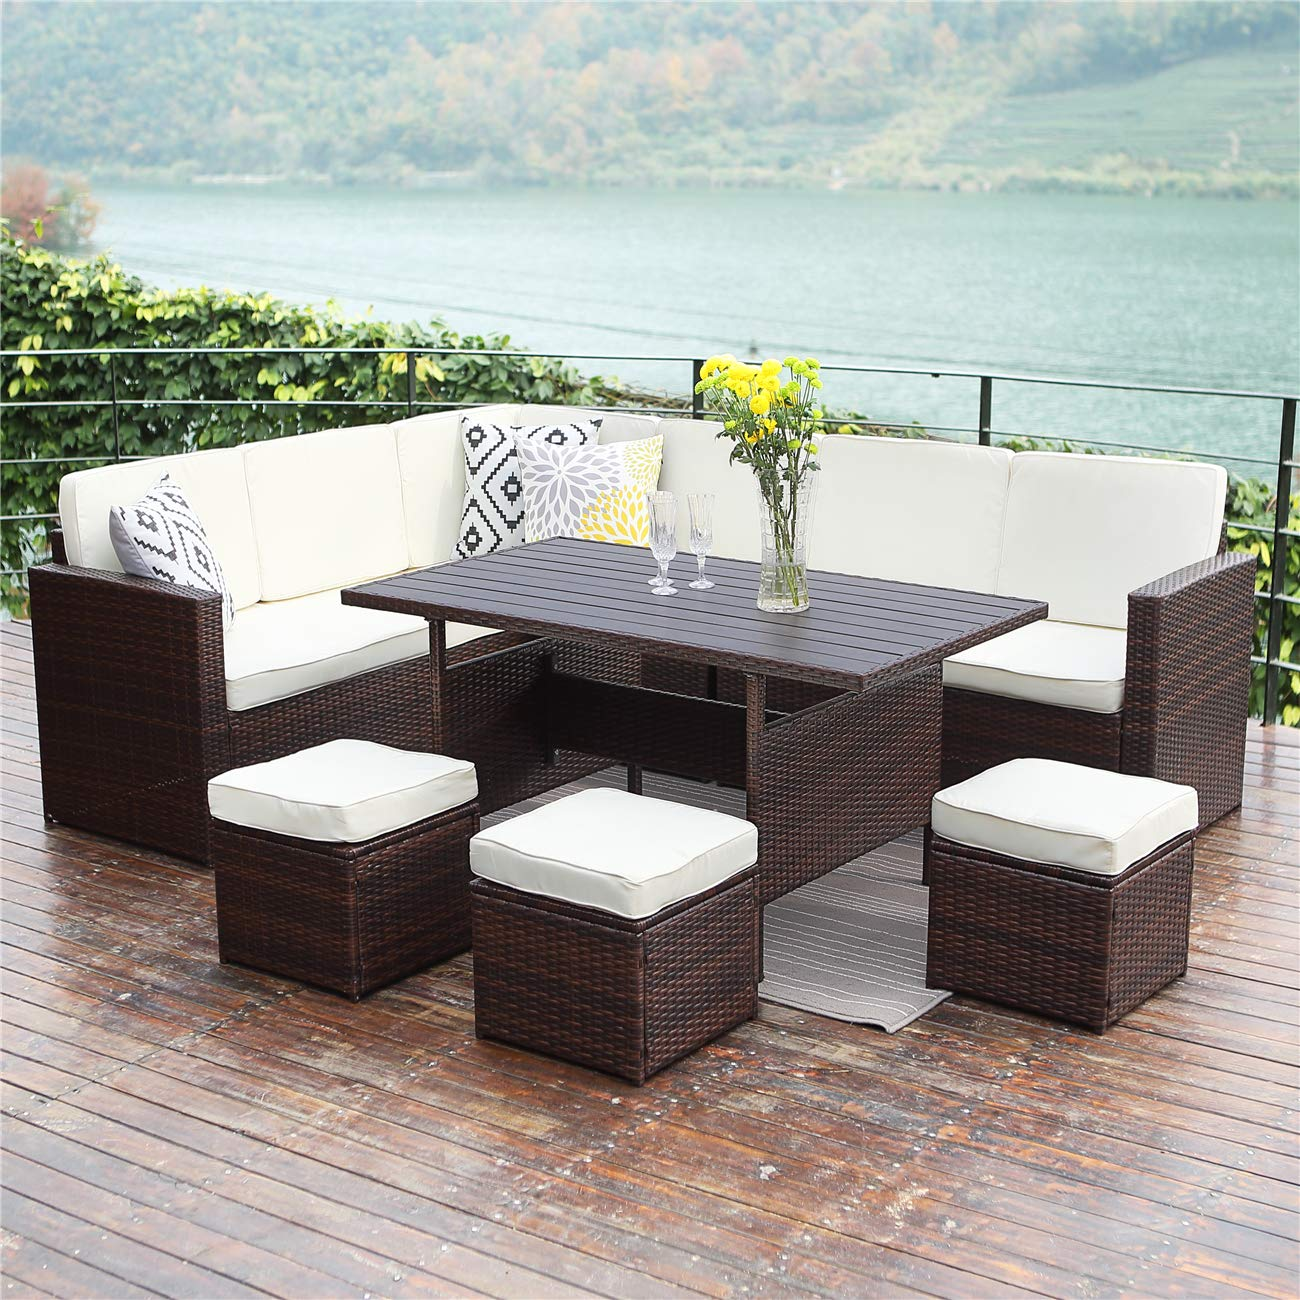 Wisteria Lane Patio Sectional Furniture Set,10 PCS Outdoor Conversation Set All Weather Wicker Sofa Table Chair Stool,Brown